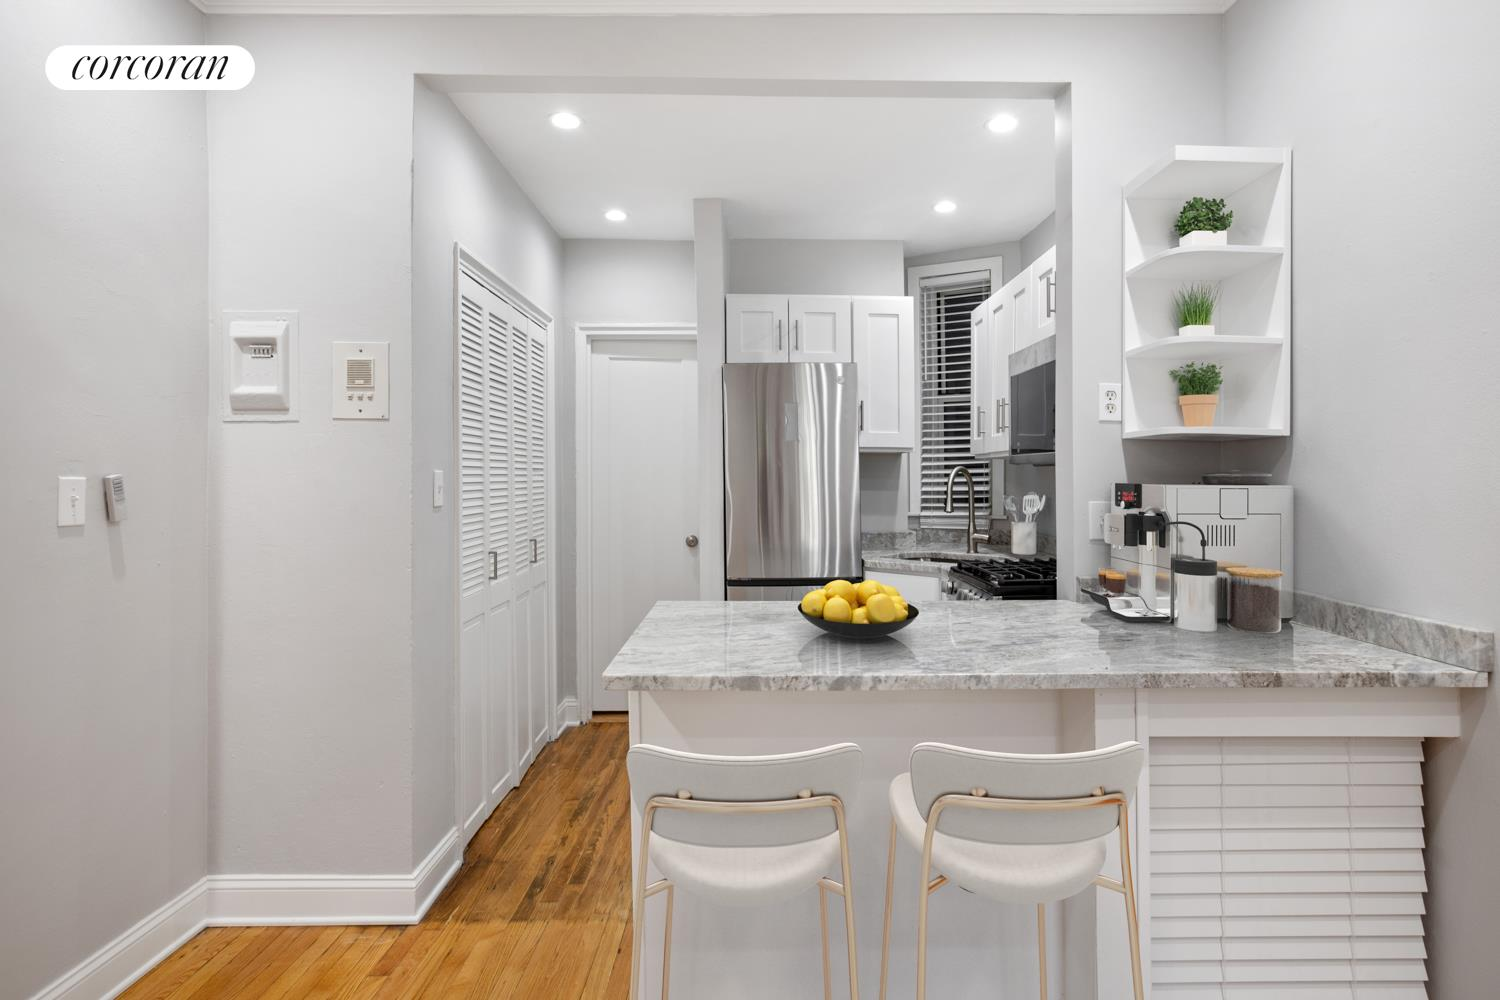 Apartment for sale at 521 East 81st Street, Apt 1C